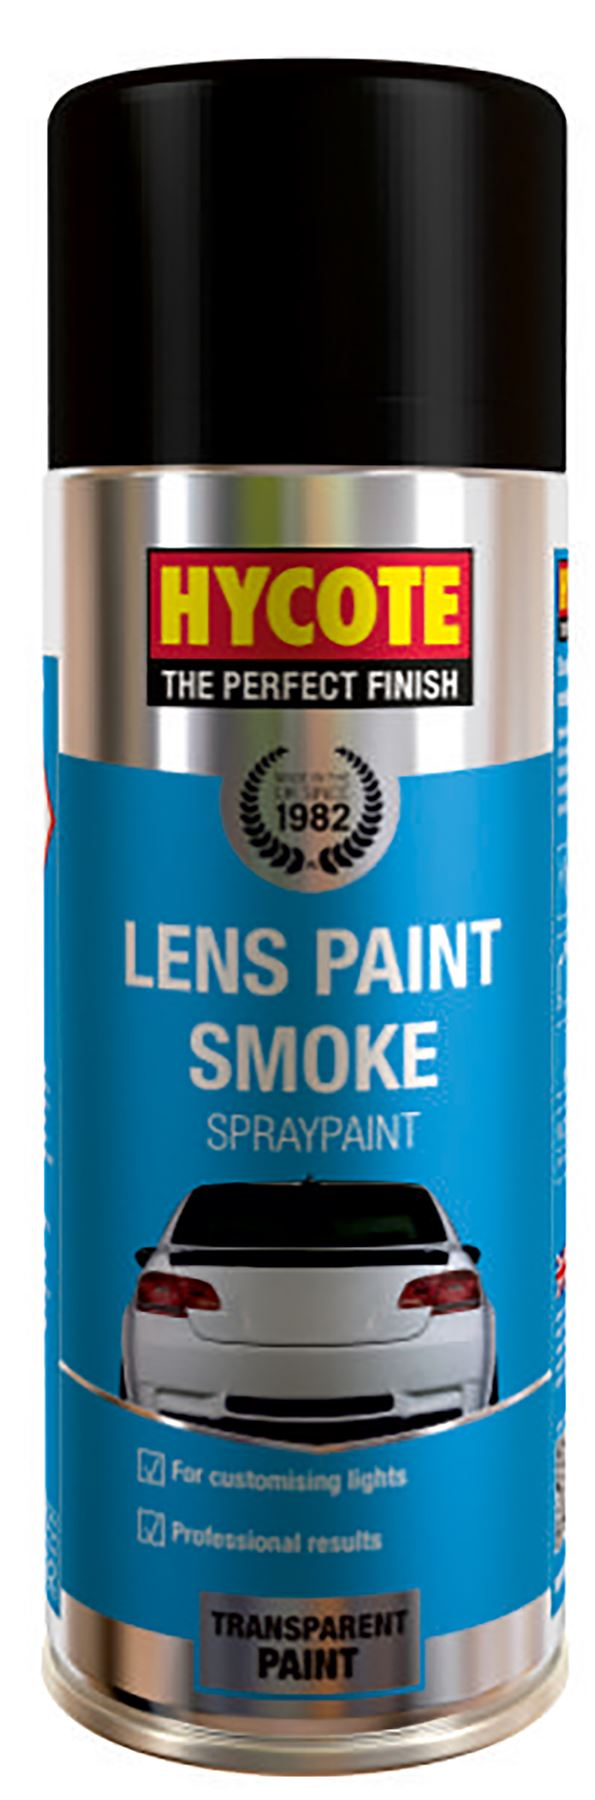 Hycote Lens Paint Smoke - 400ml